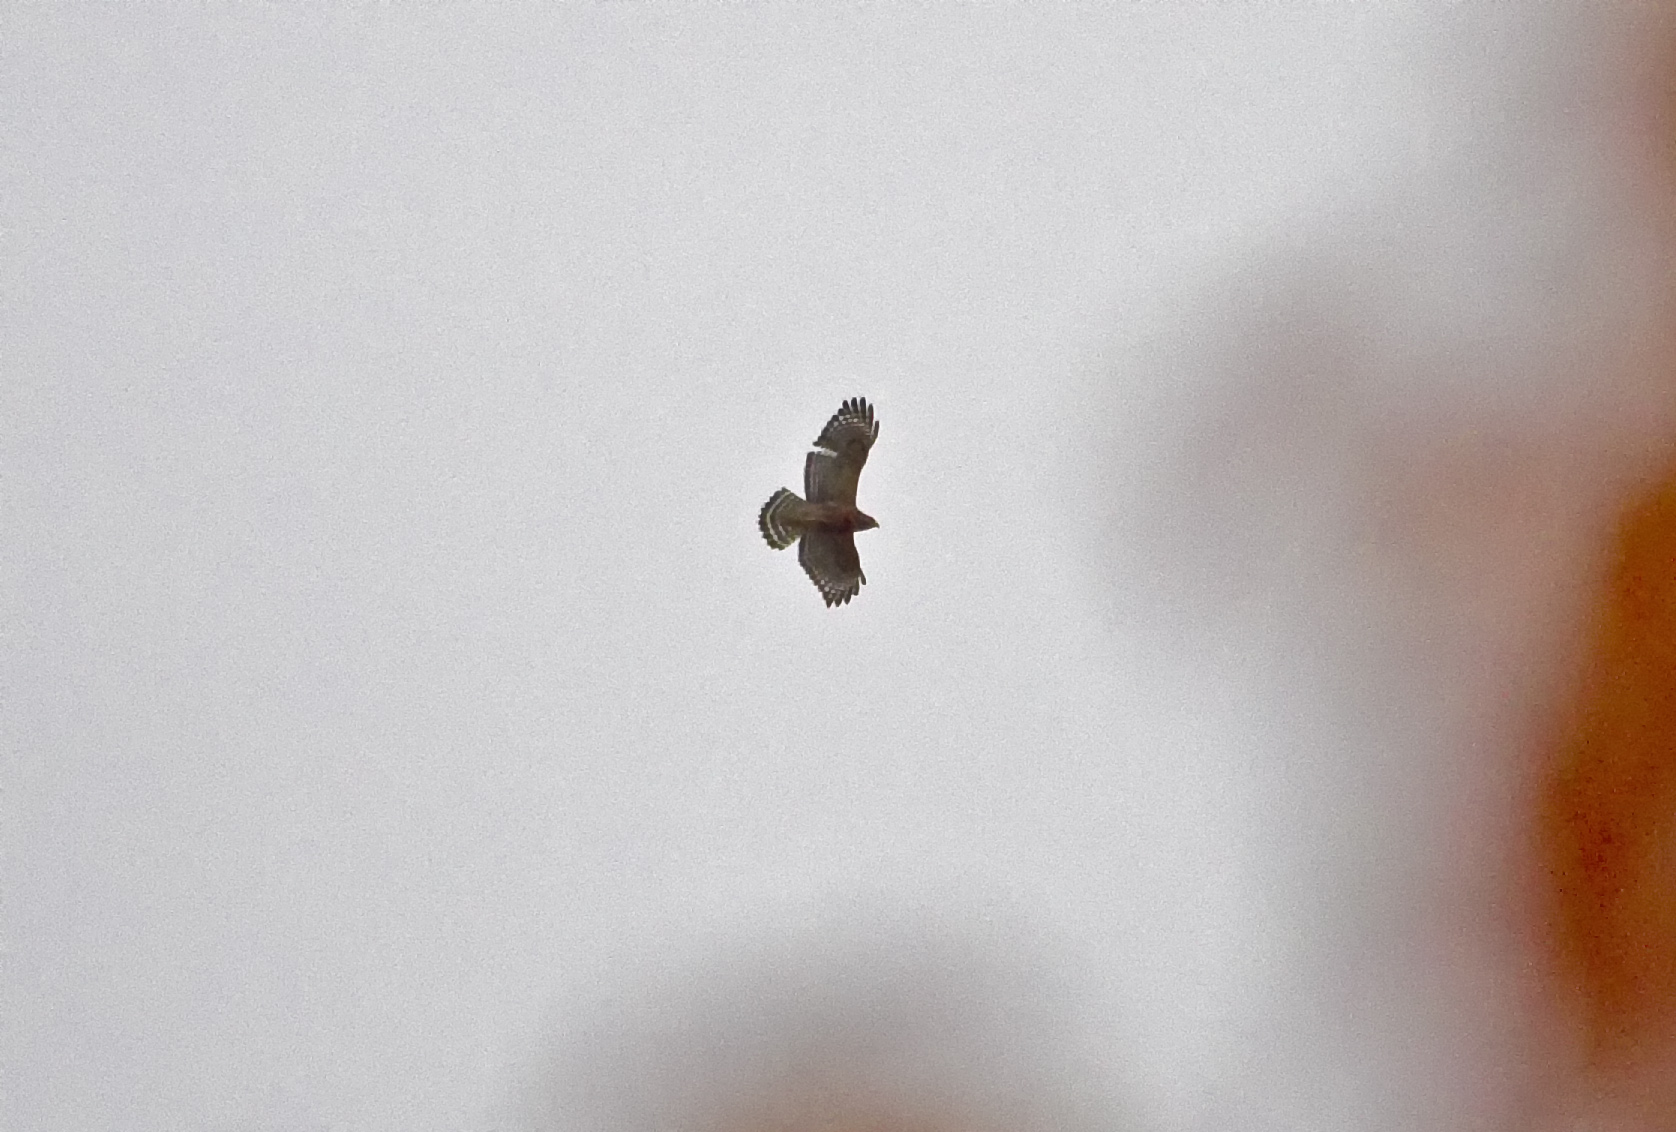 The only decent shot of the Red-shouldered Hawk as it flew over my Jeep today